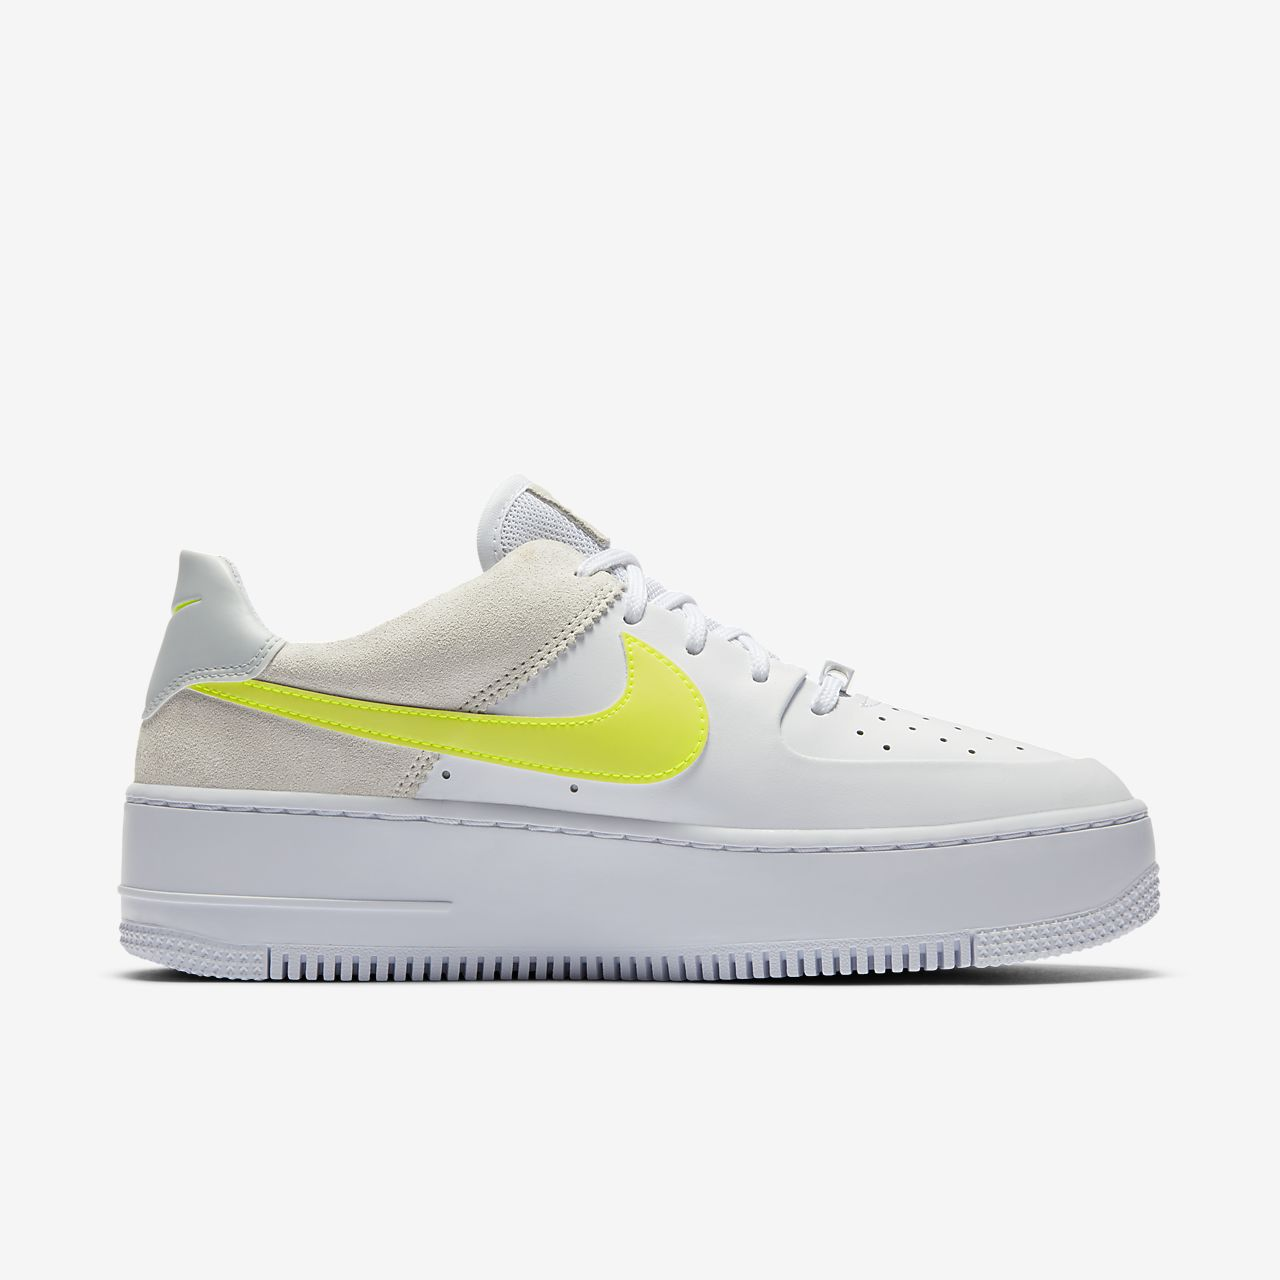 Nike Air Force 1 Low Puerto Rico · Fresh sneakers and